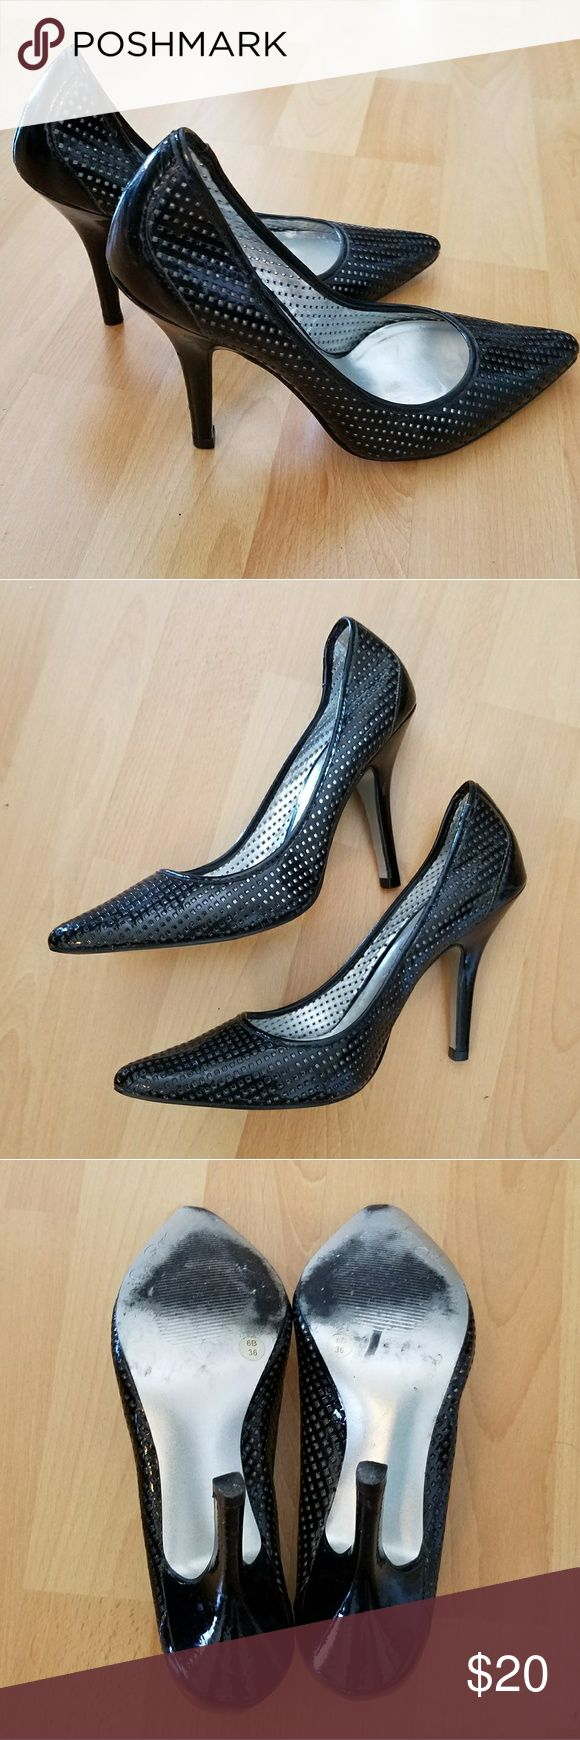 """Black Patent Leather Stilettos by Jessica Simpson Sexy shiny black heels with """"mesh"""" pointed toe and mid height height skinny heels that make your legs long and lean! Perfect for day or evening! In great used condition. No odors, Jessica Simpson Shoes Heels"""